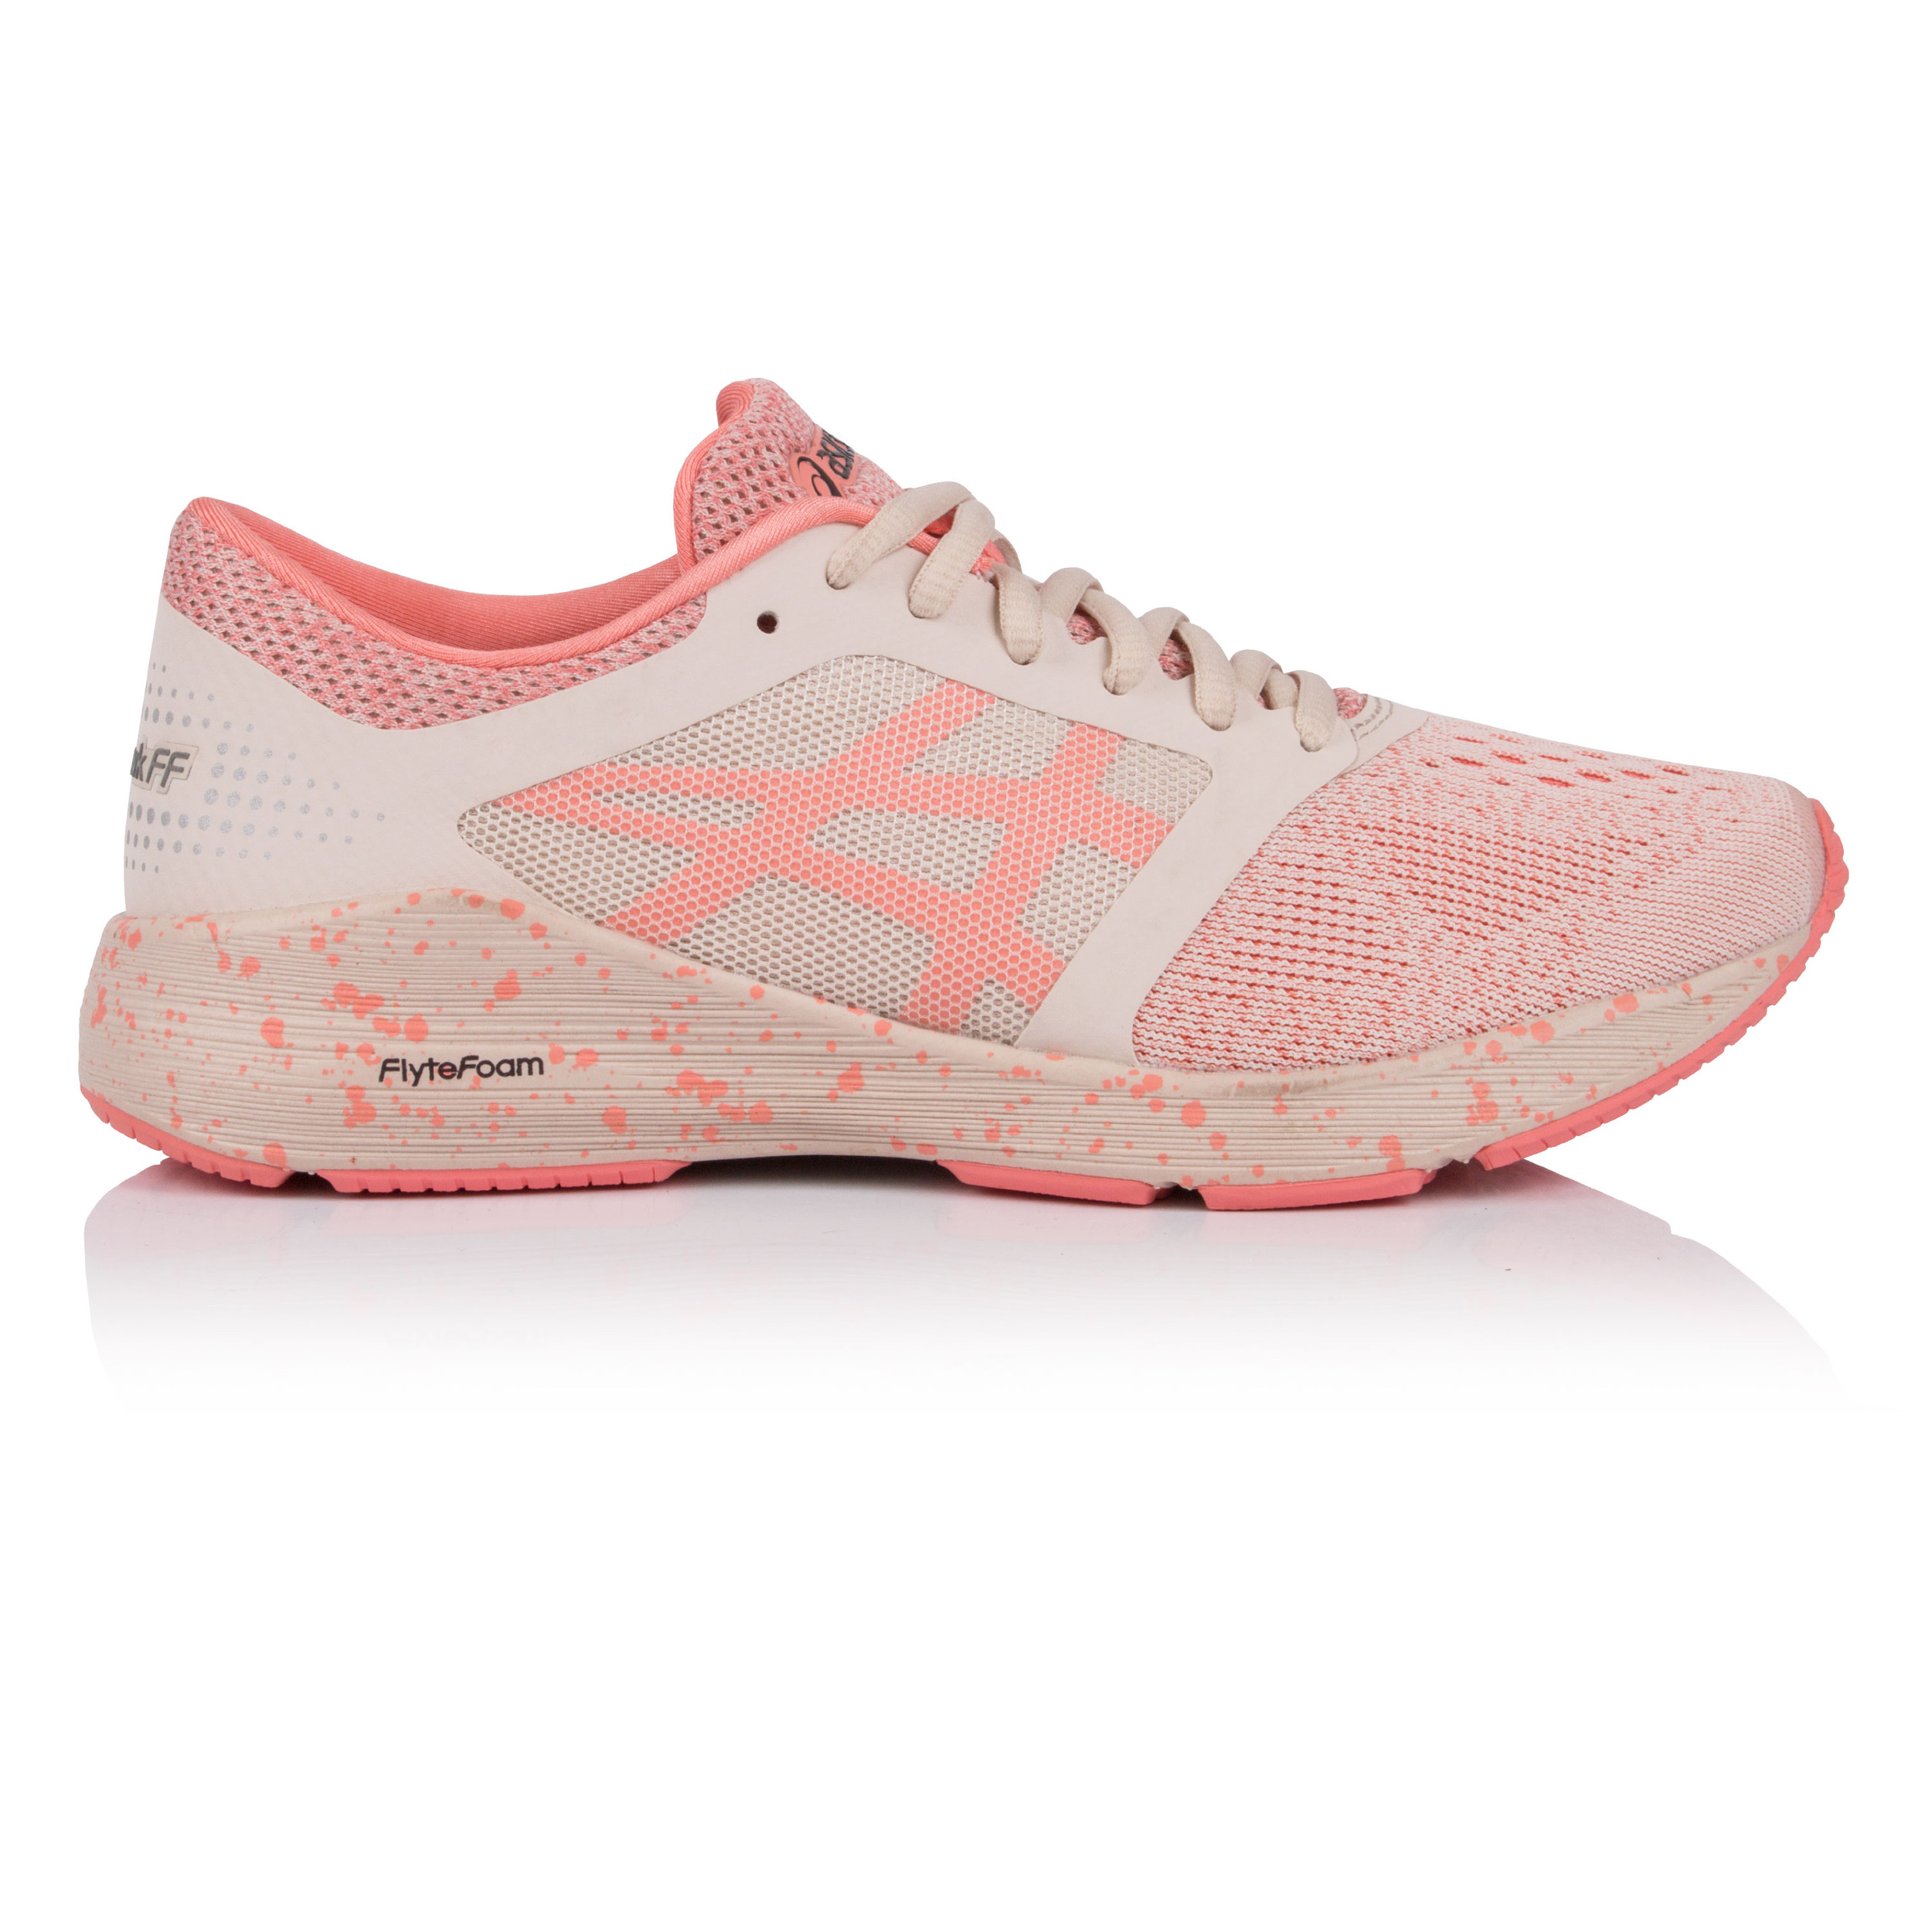 Details about Asics Womens Roadhawk FF Running Shoes Trainers Sneakers Pink Sports Breathable